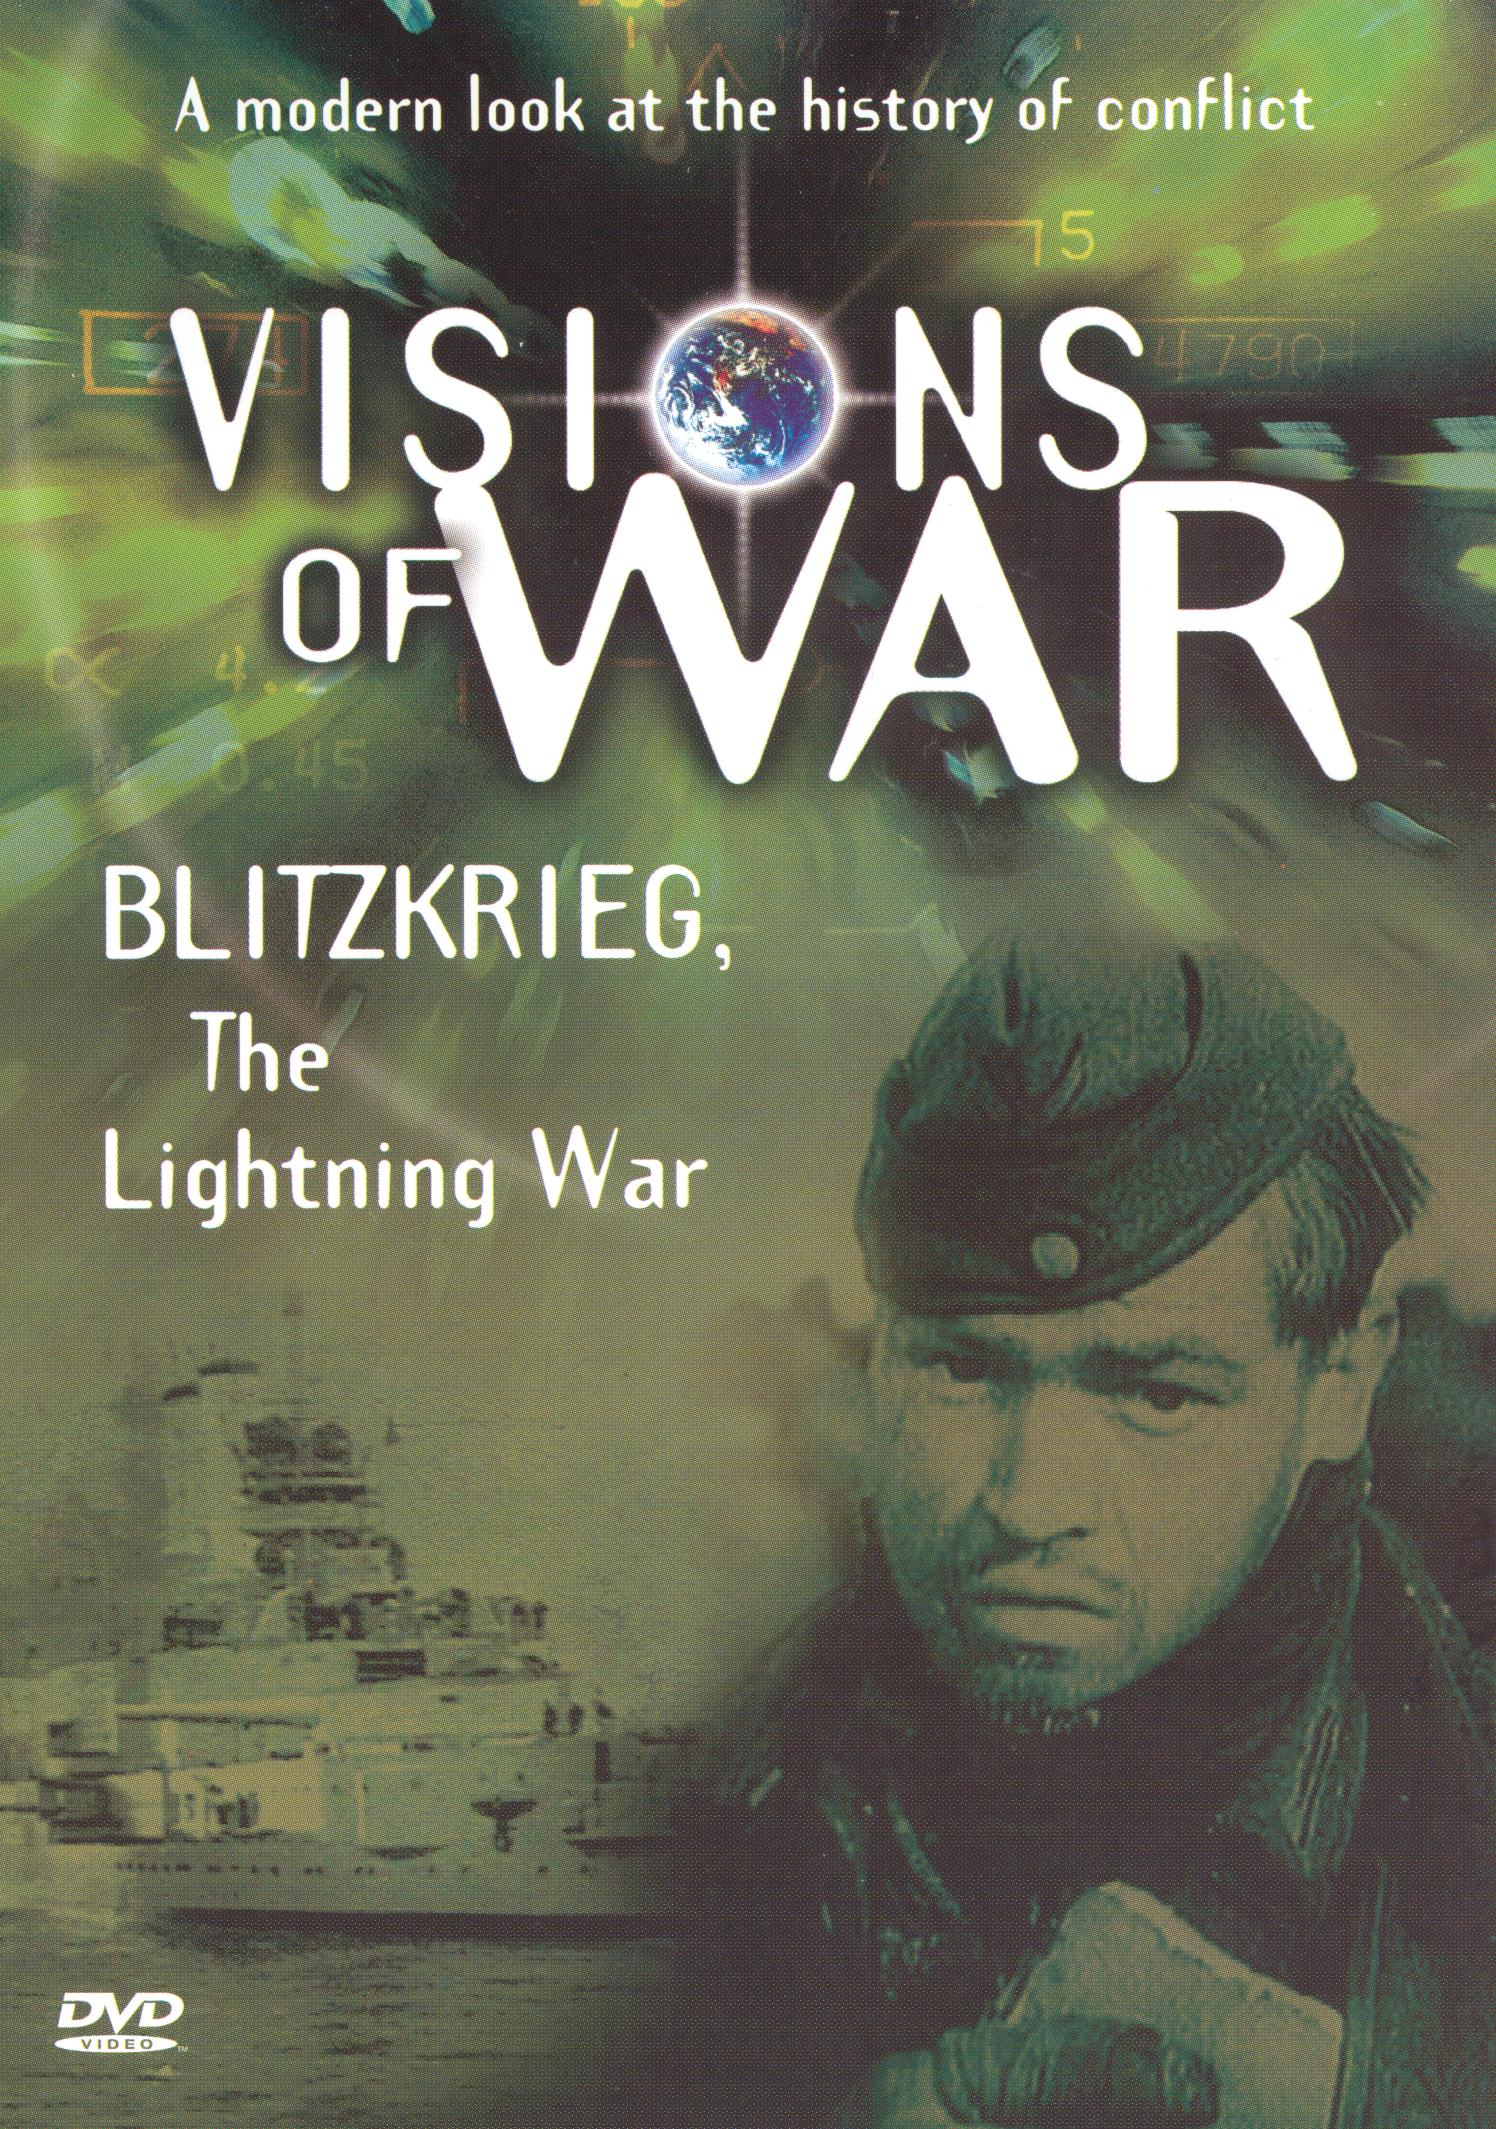 Visions of War: A Modern Look at the History of Conflict - Blitzkreig, The Lightning War